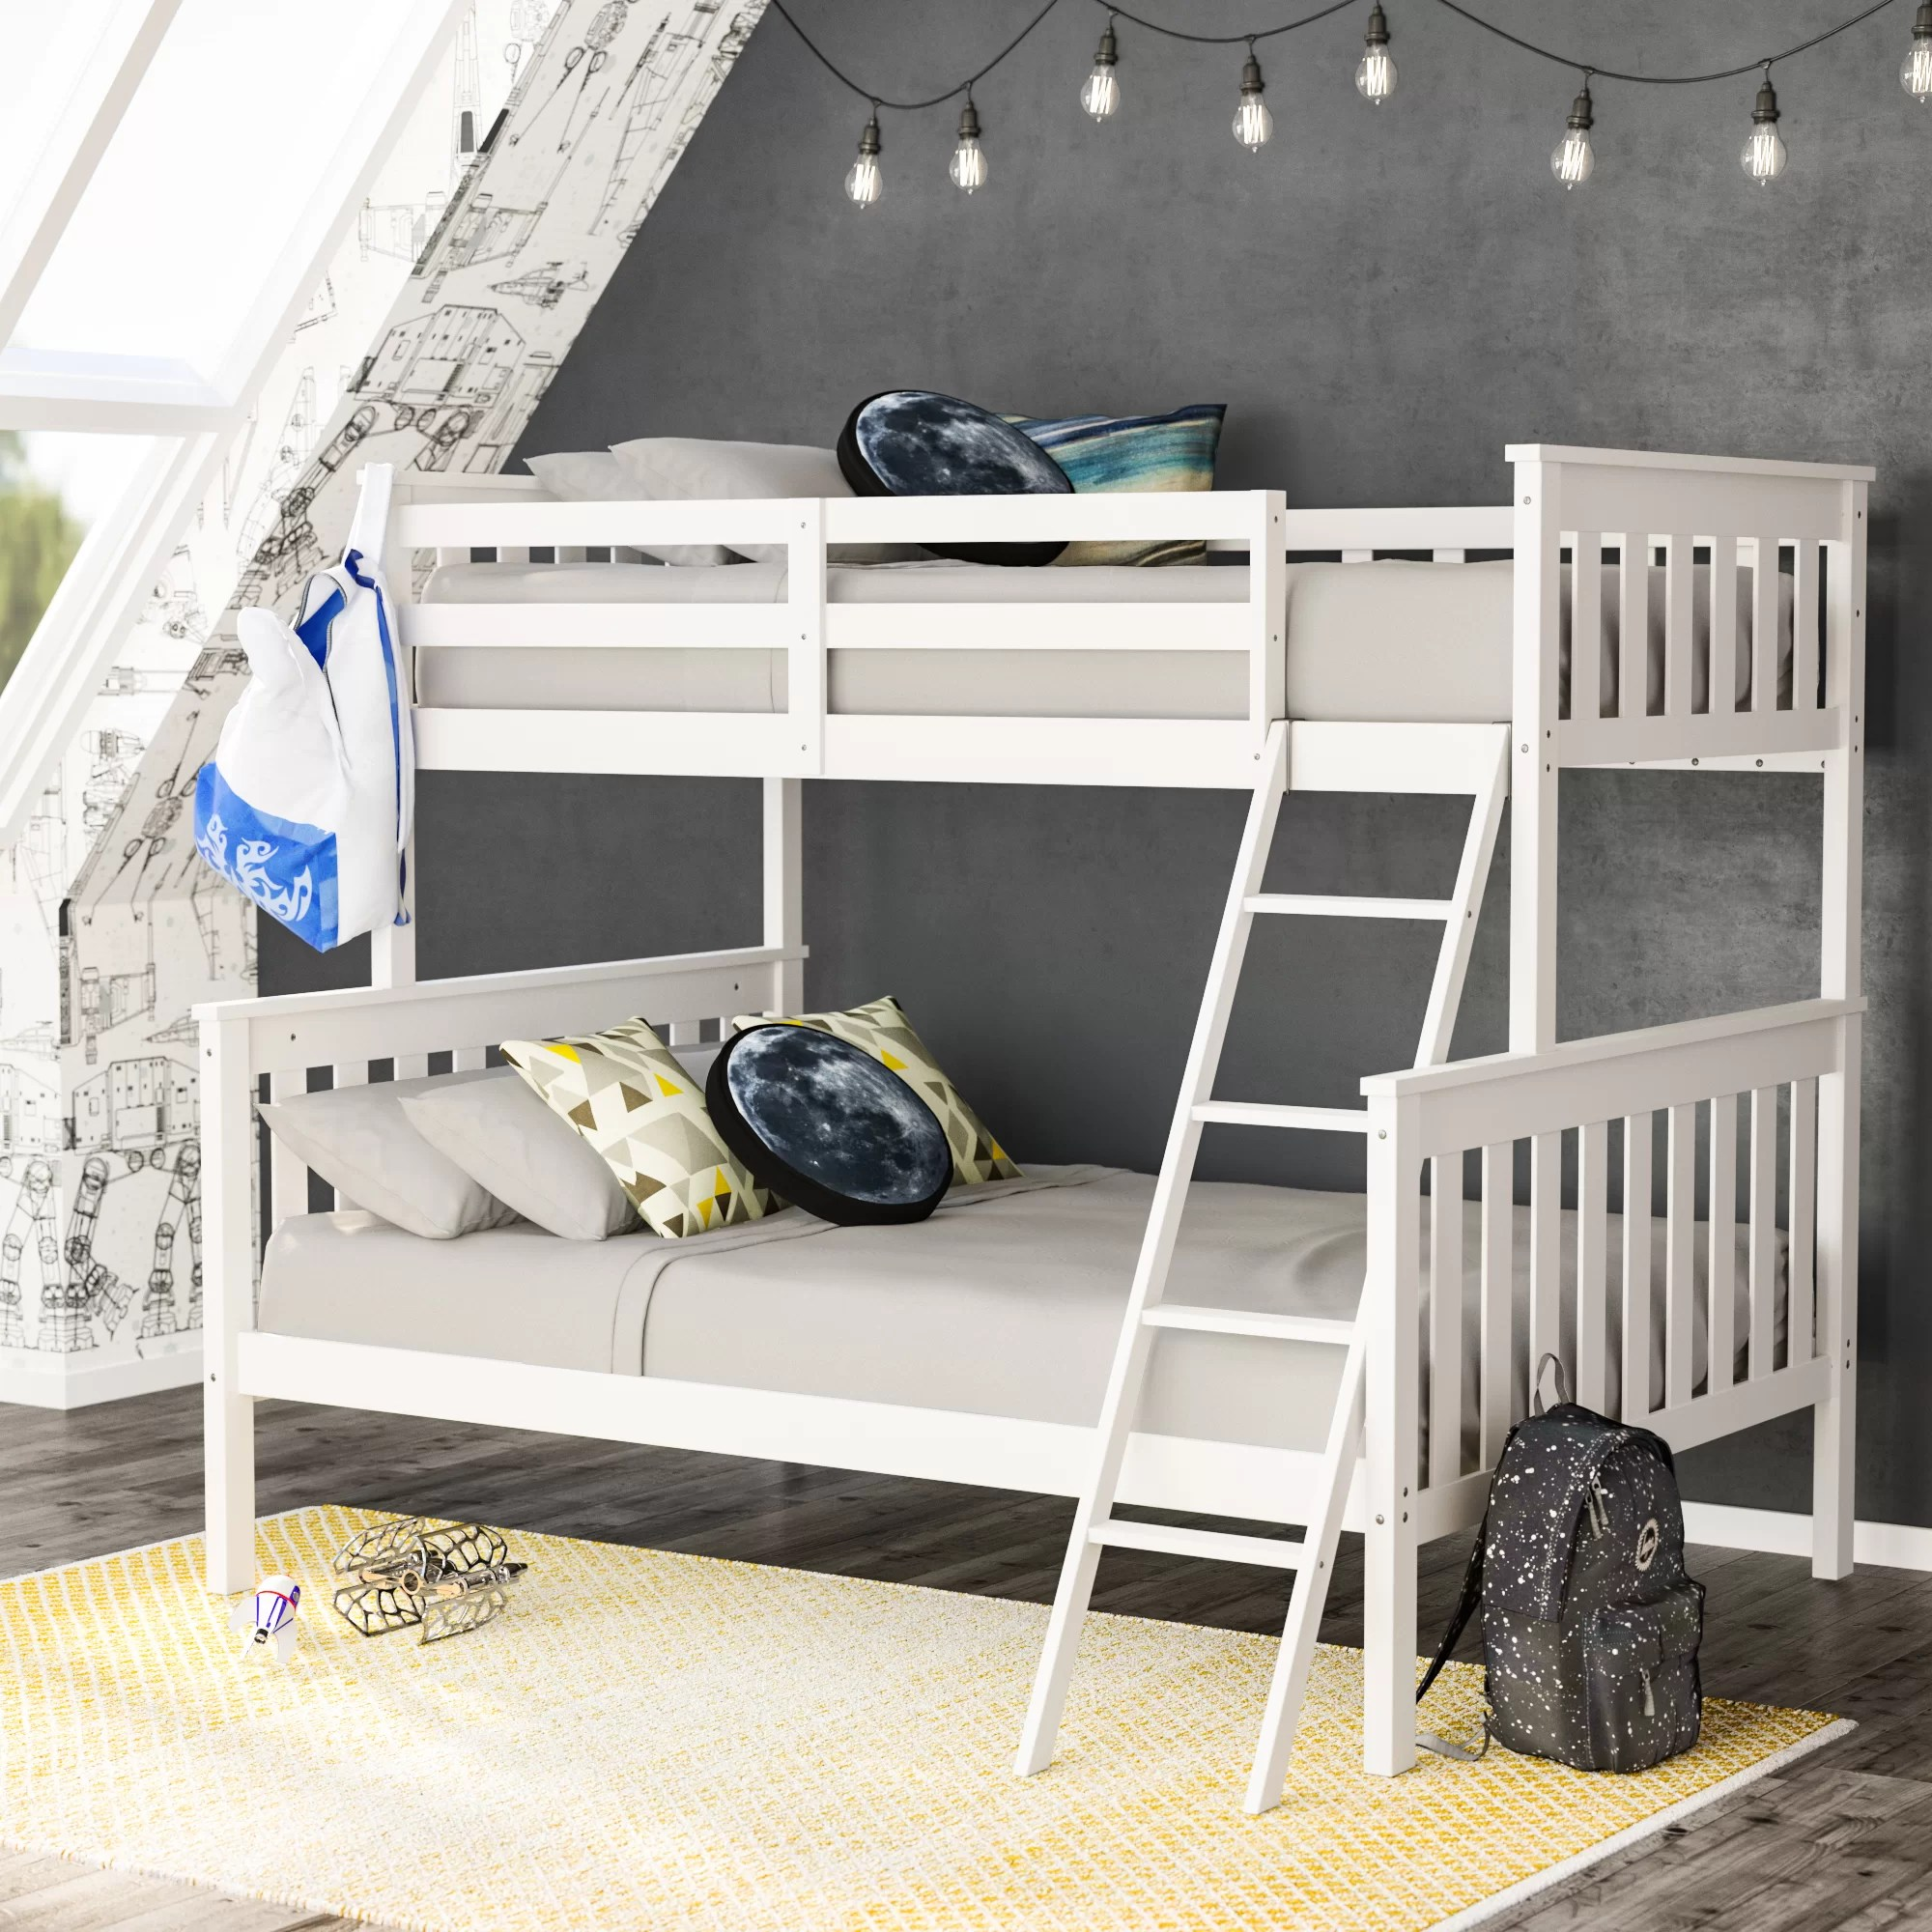 Snooze Bunk Beds Rowley Twin Over Full Bunk Bed